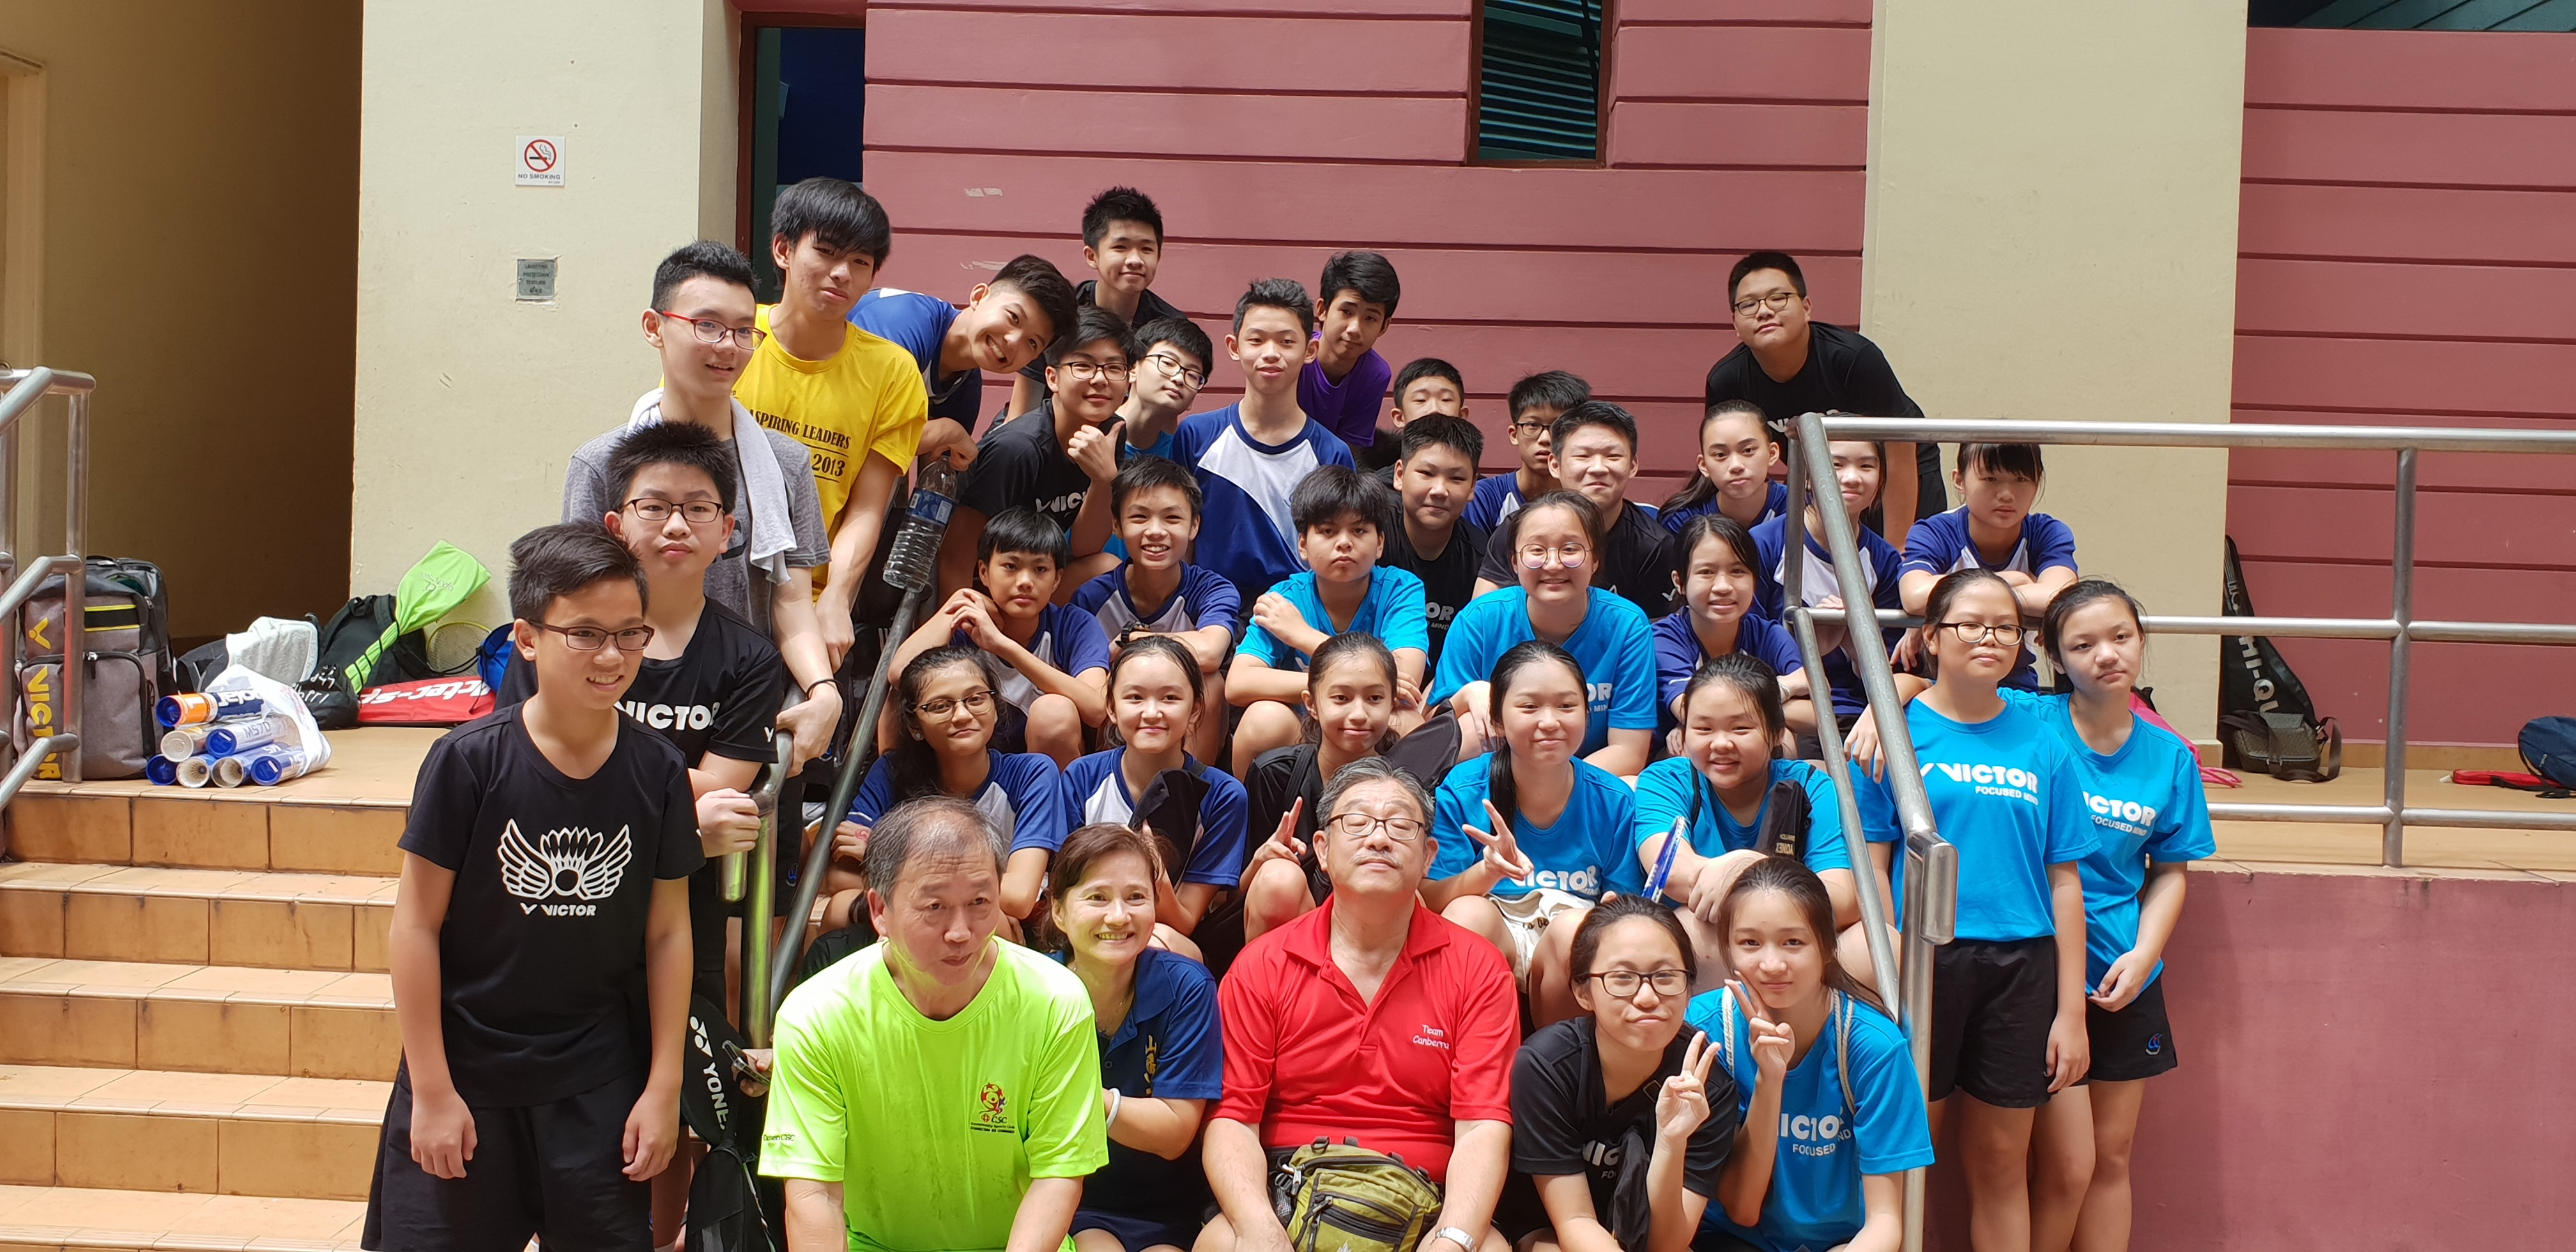 badminton-investiture2018.jpg